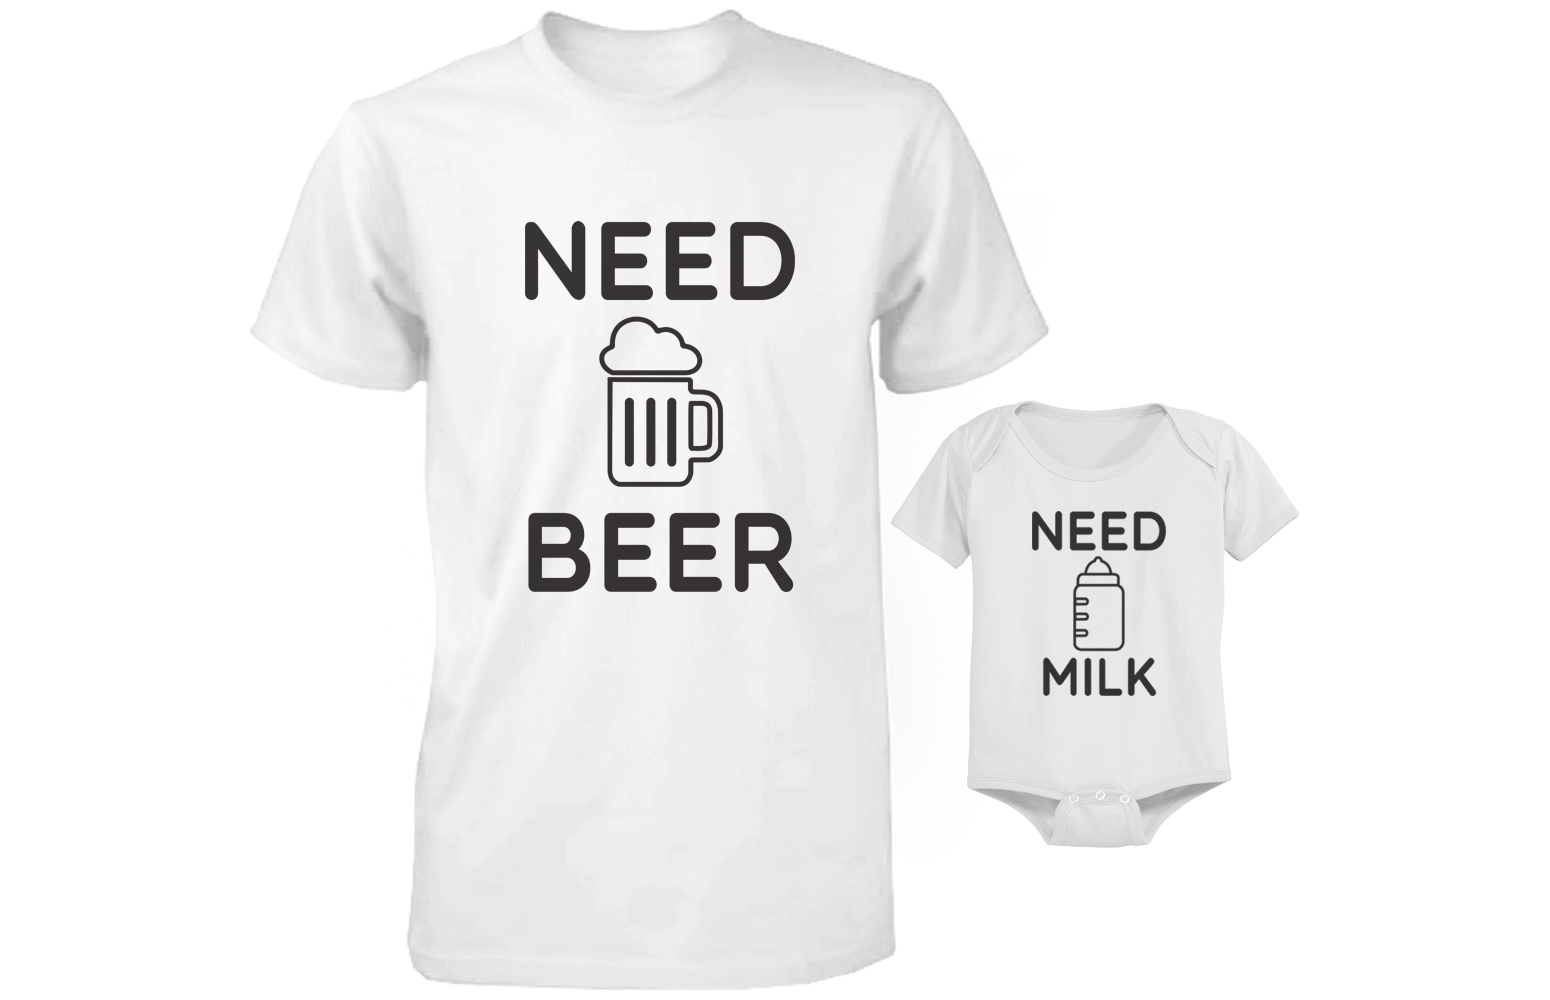 Need Bear Need Milk Matching Shirt Onesie For Daddy Baby Set